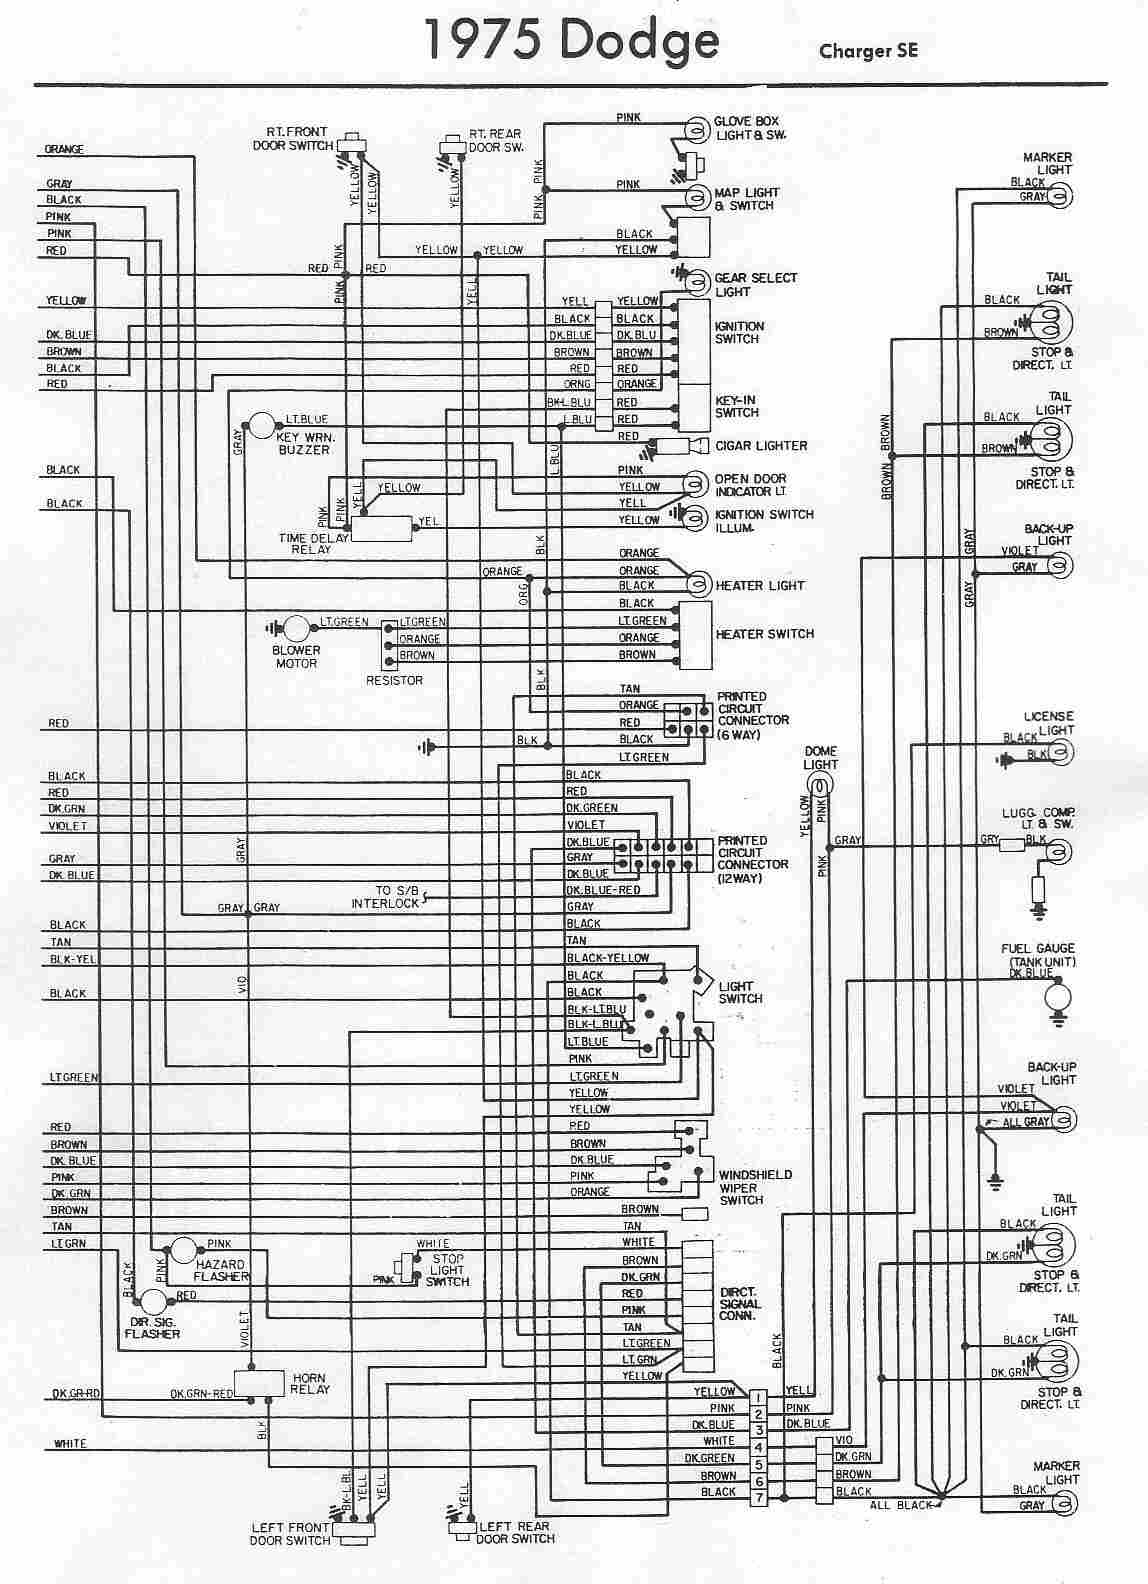 2009 ram 1500 wiring diagram 19 sg dbd de \u20222009 dodge wiring diagram best part of wiring diagram rh i12 aluminiumsolutions co 2009 dodge ram 1500 4 7 wiring diagram 2009 dodge ram 1500 headlight